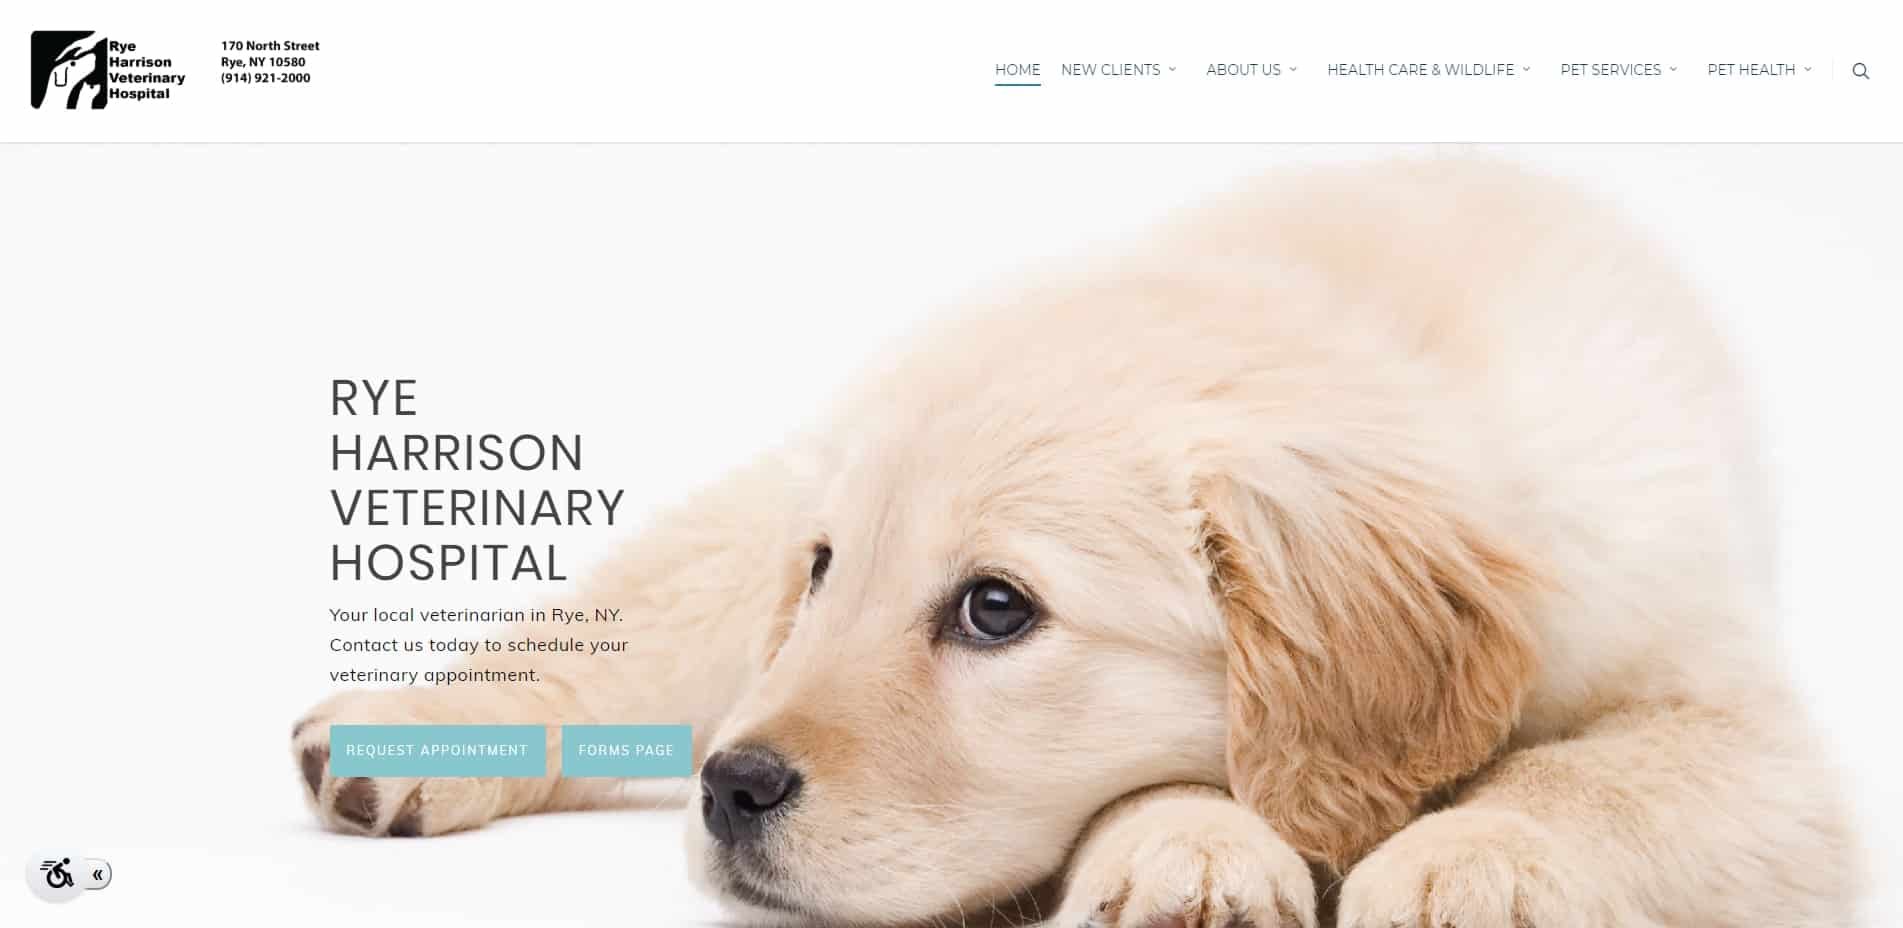 Rye-Harrison-Veterinary-Hospital-Rye-Harrison-Veterinary-Hospital